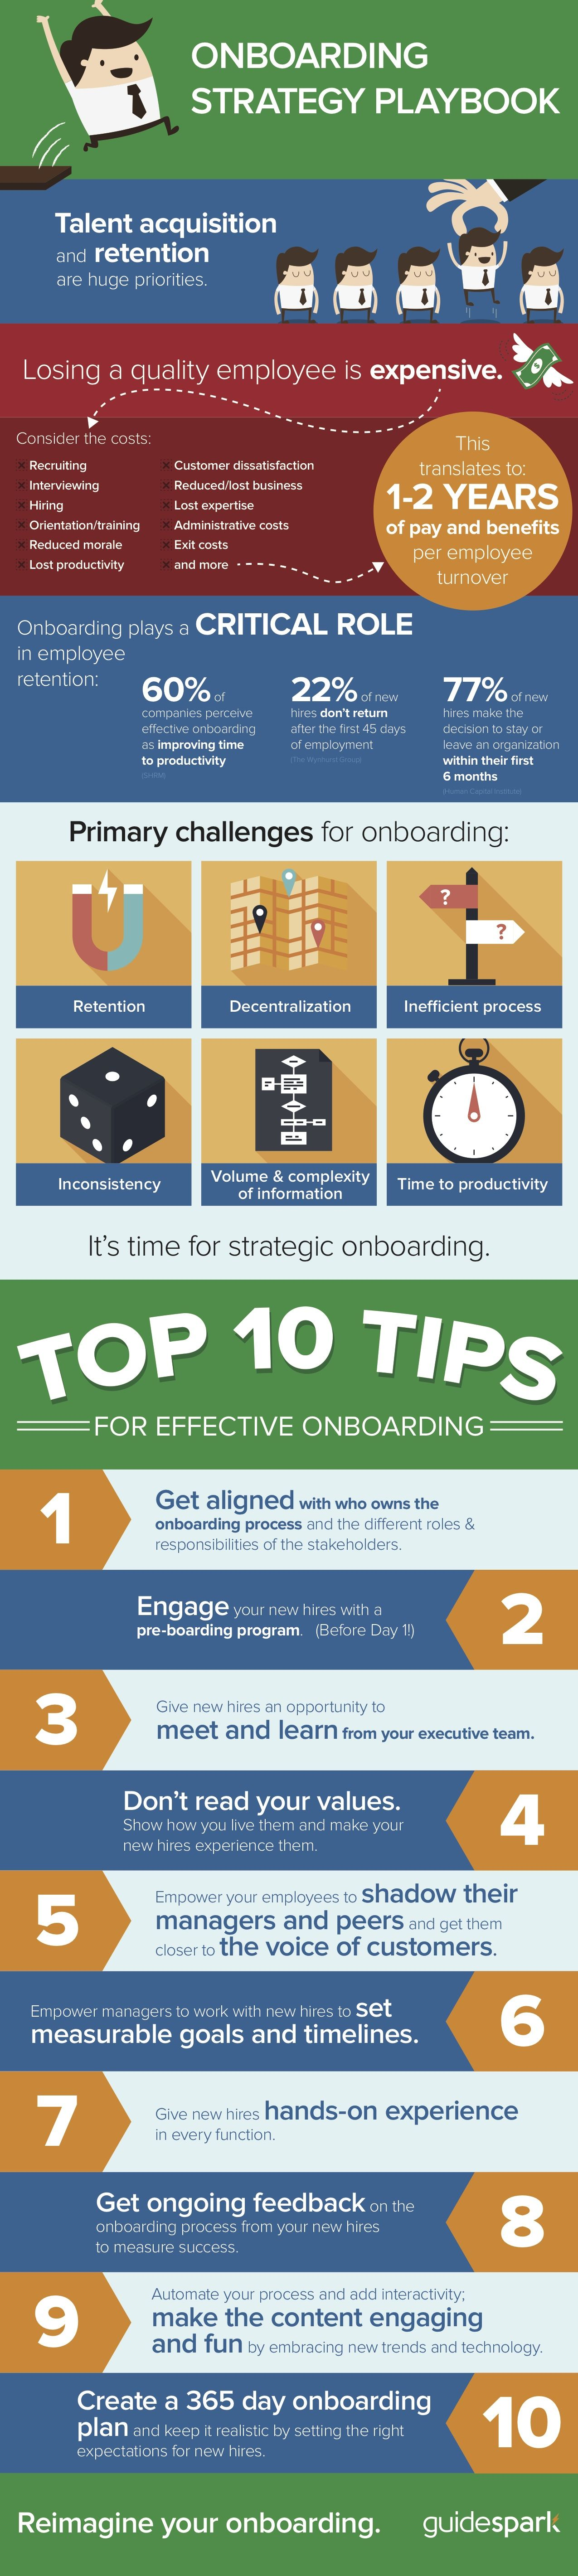 Top  Tips For Effective Onboarding Infographic  Guidespark